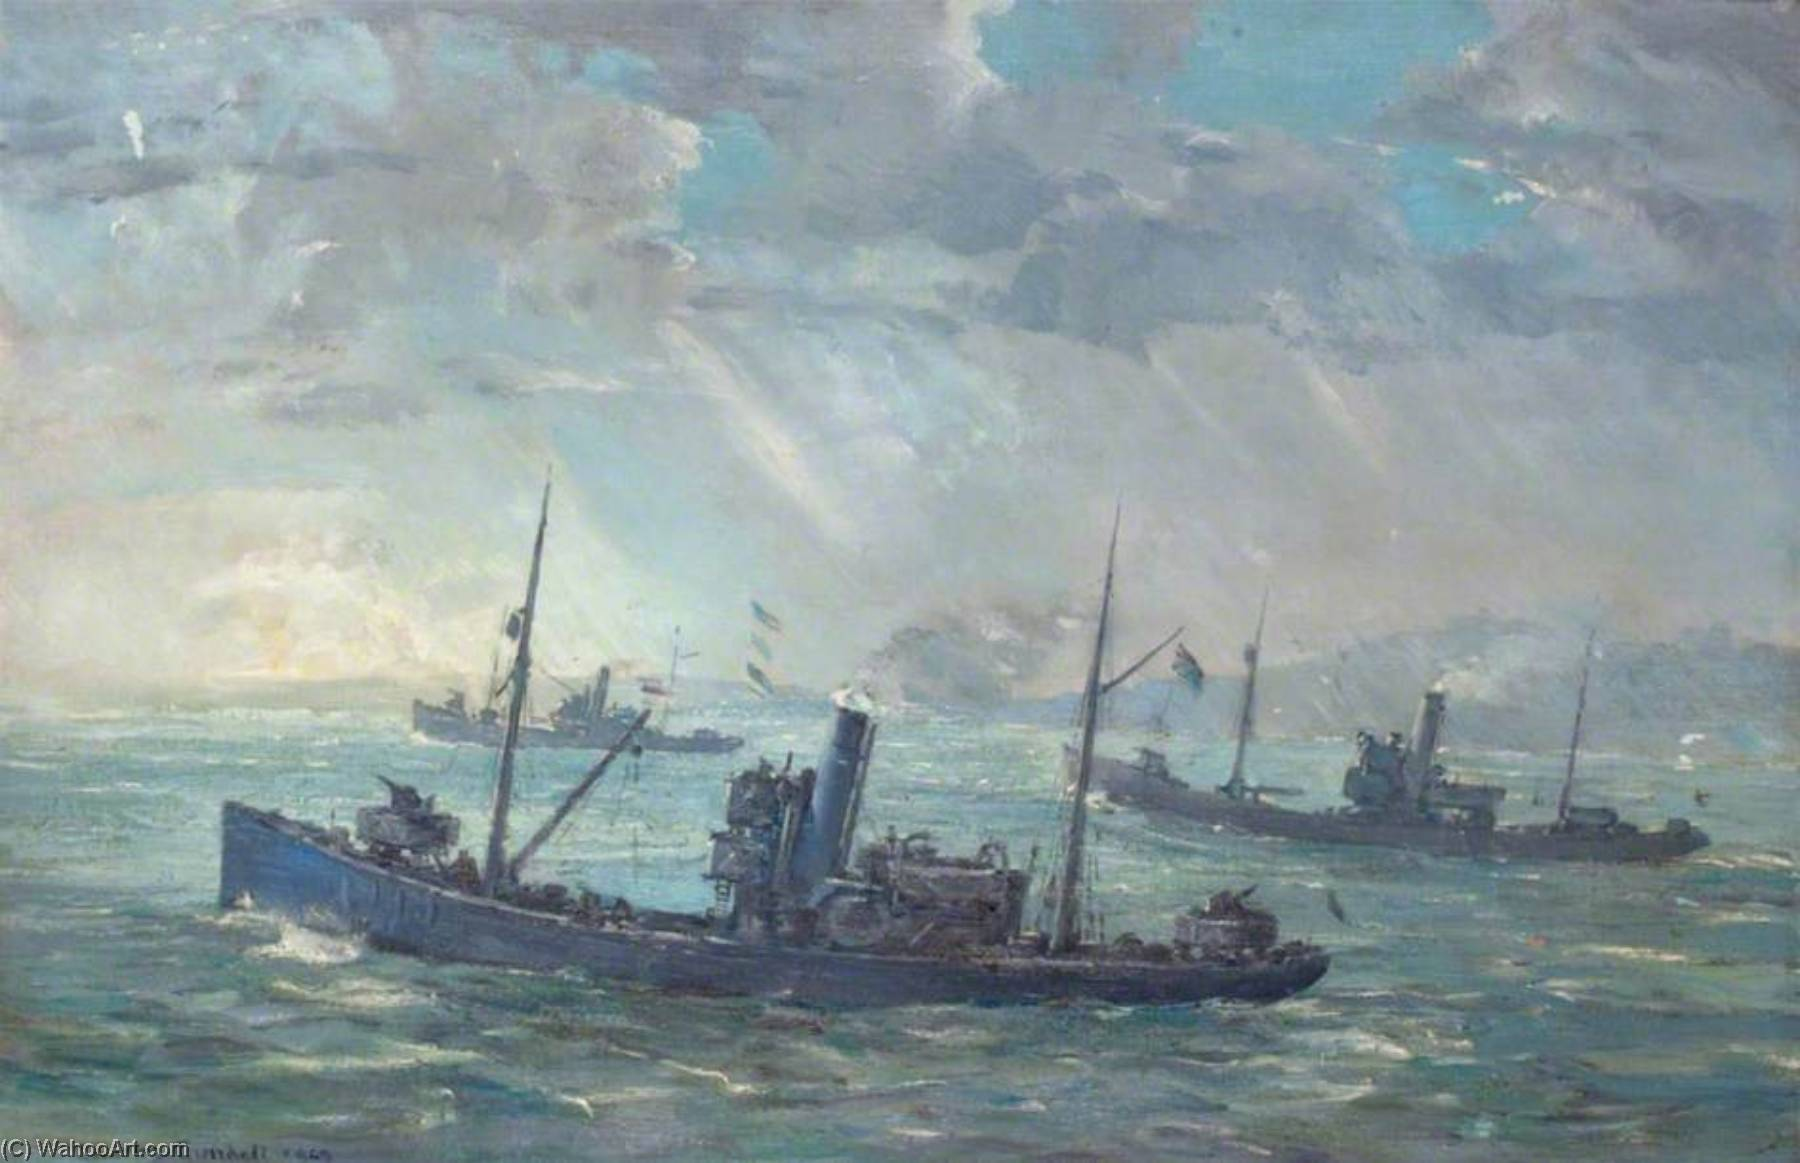 Minesweepers, óleo sobre lienzo de Charles Ernest Cundall